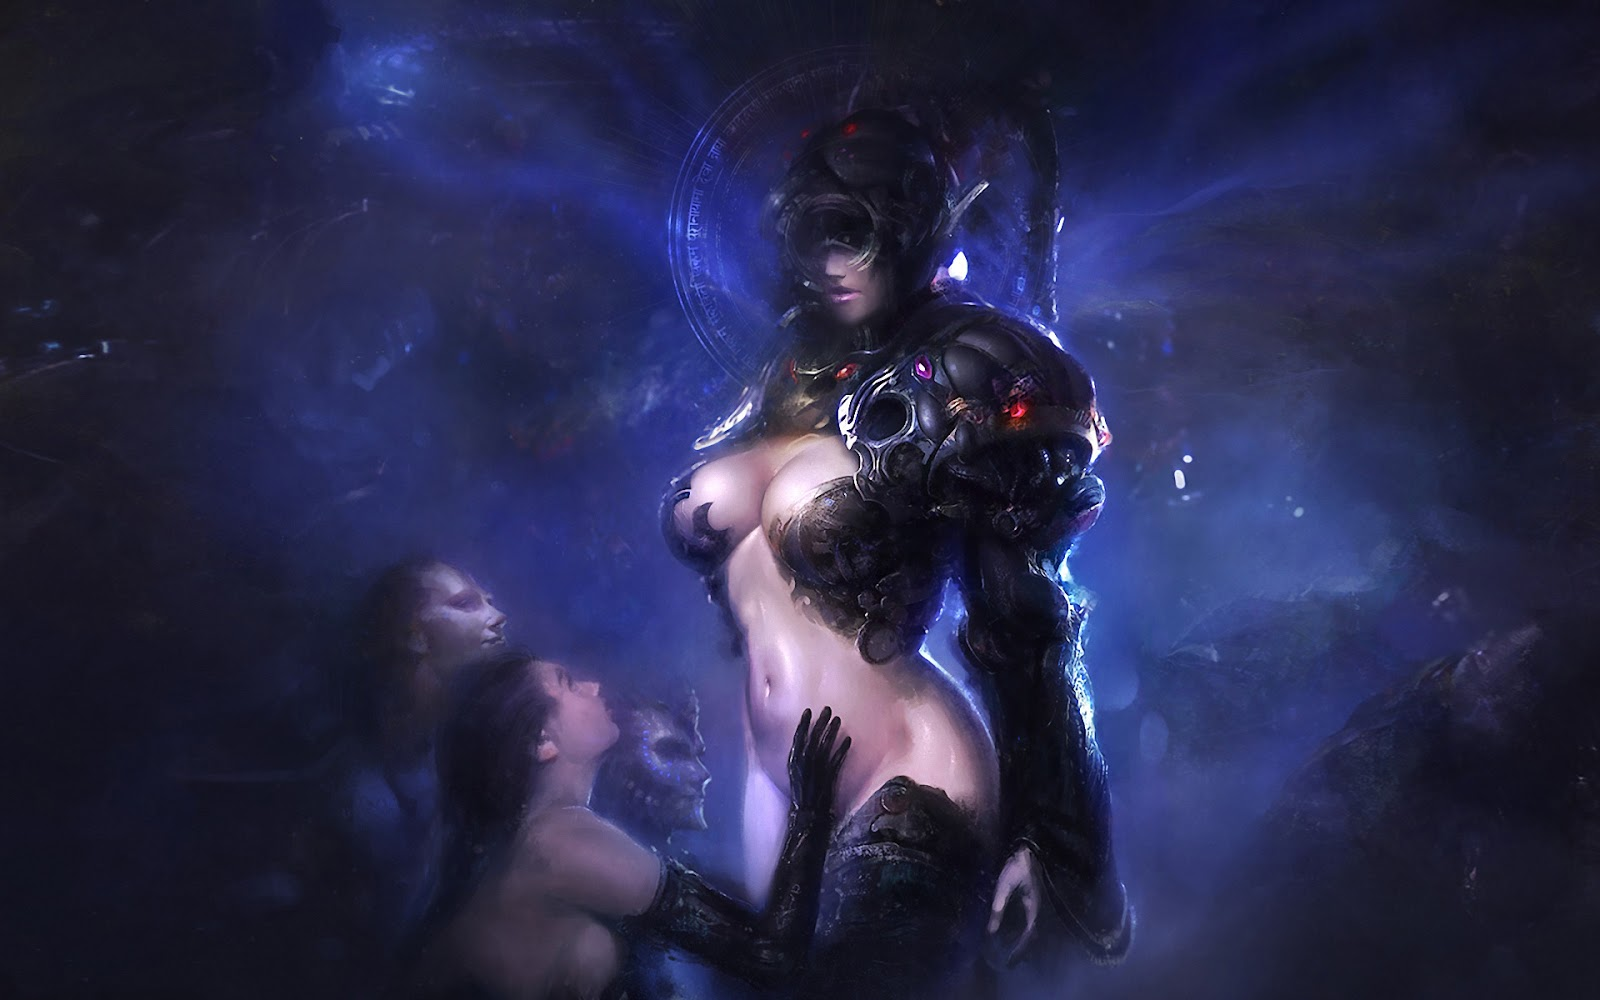 Hd fantasy warrior sexy girl images sexual scene